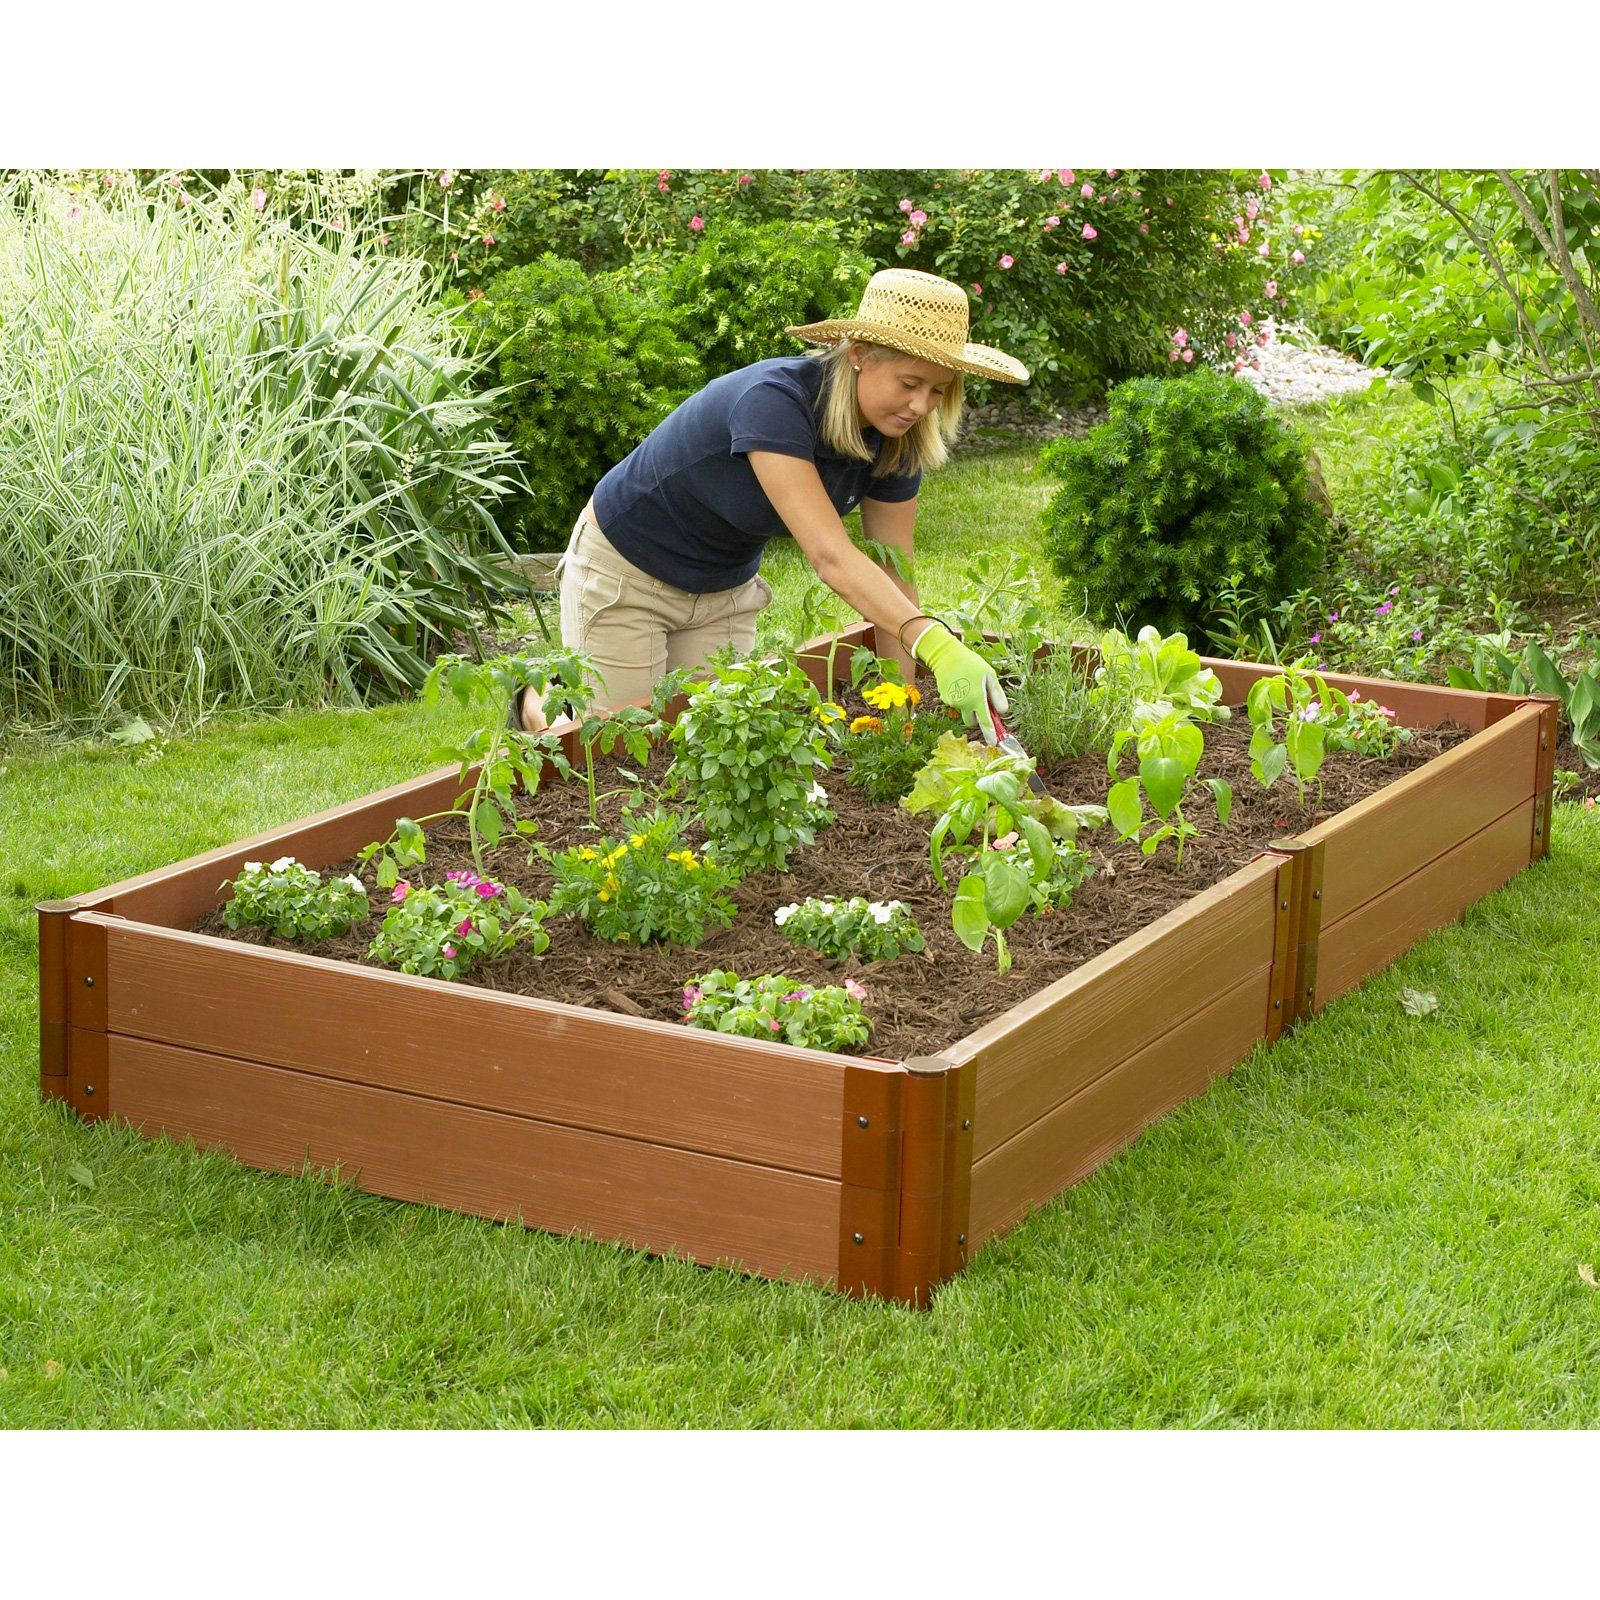 Have To Have It Frame It All 4 X 8 Recycled Resin Raised Garden Bed 12h In 259 99 Backyard Vegetable Gardens Building A Raised Garden Raised Garden Bed Kits